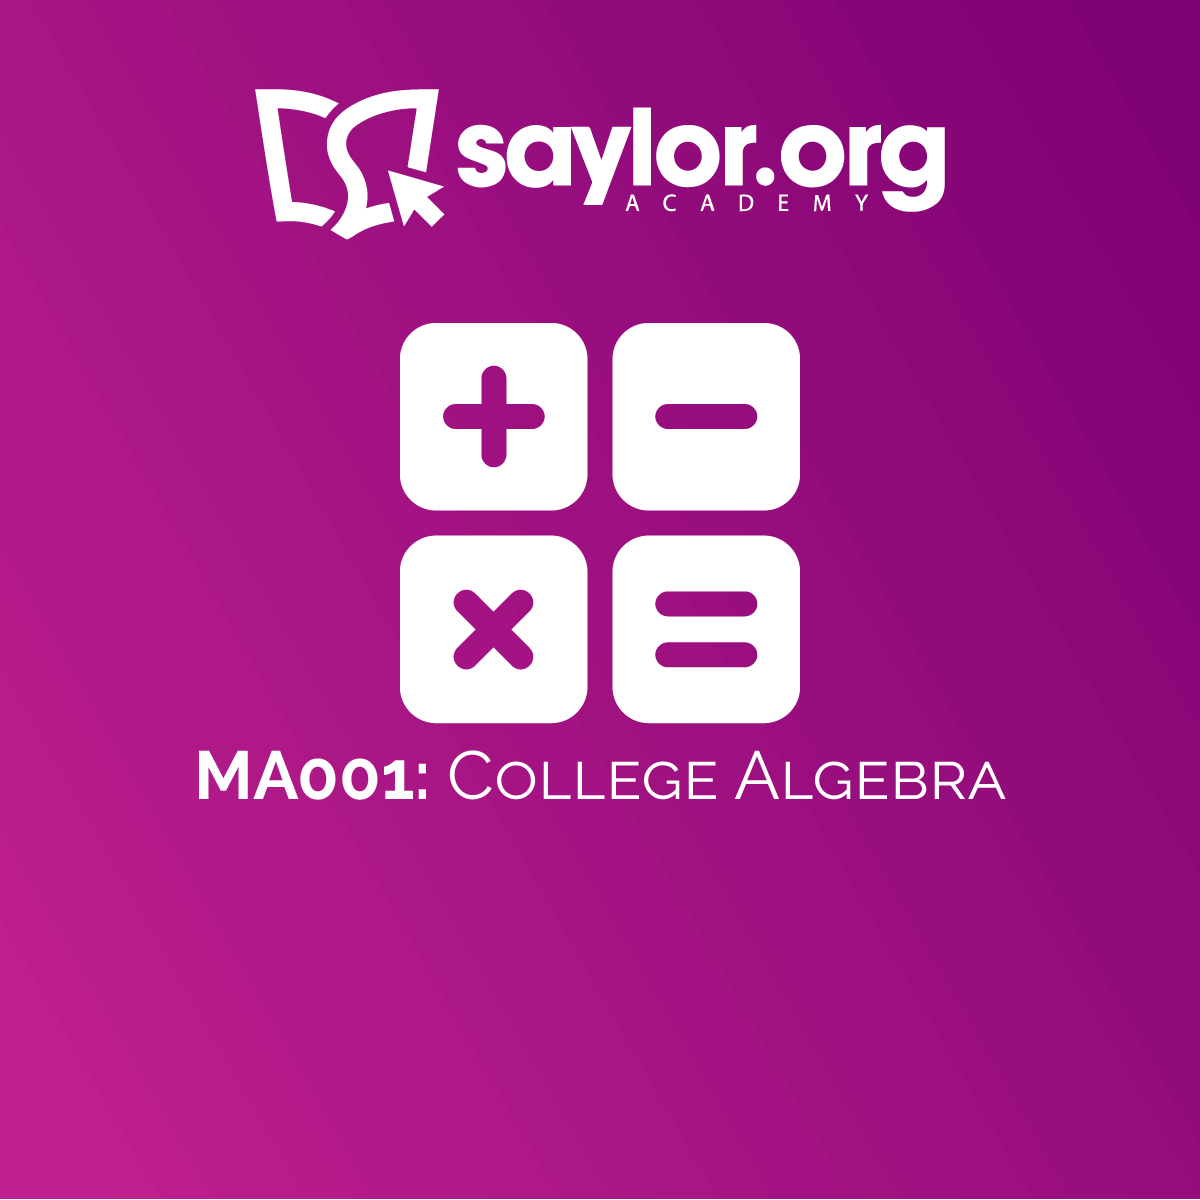 MA001: College Algebra, Topic: Unit 4: Factoring Polynomials